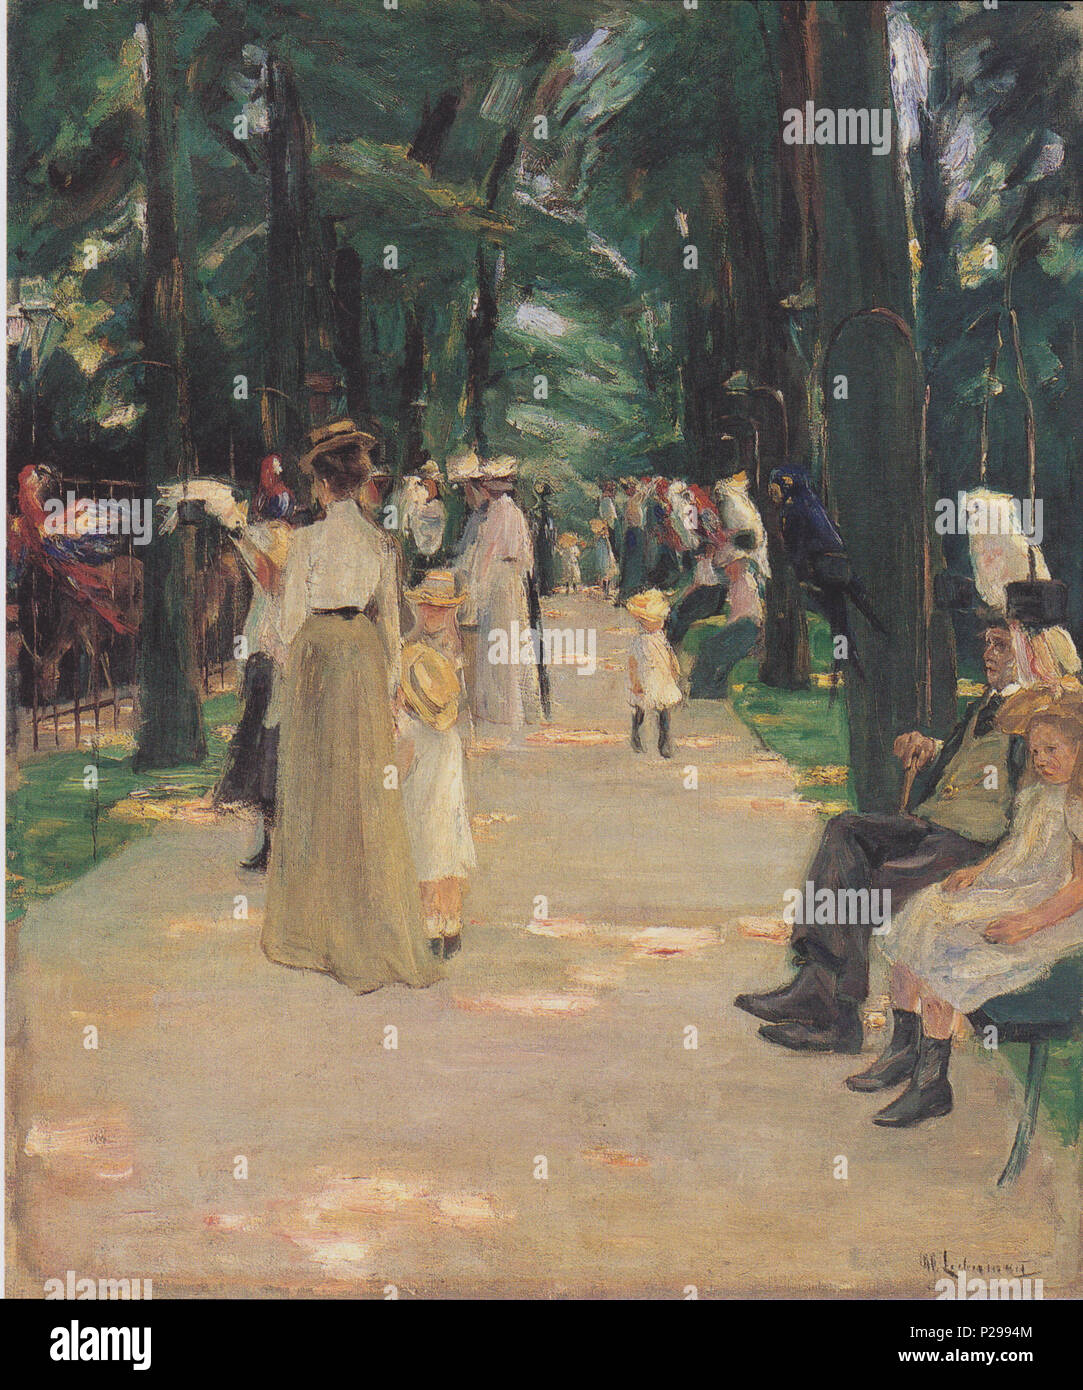 . Parrot Alley . 1902 176 Liebermann - Papageienallee - Stock Image